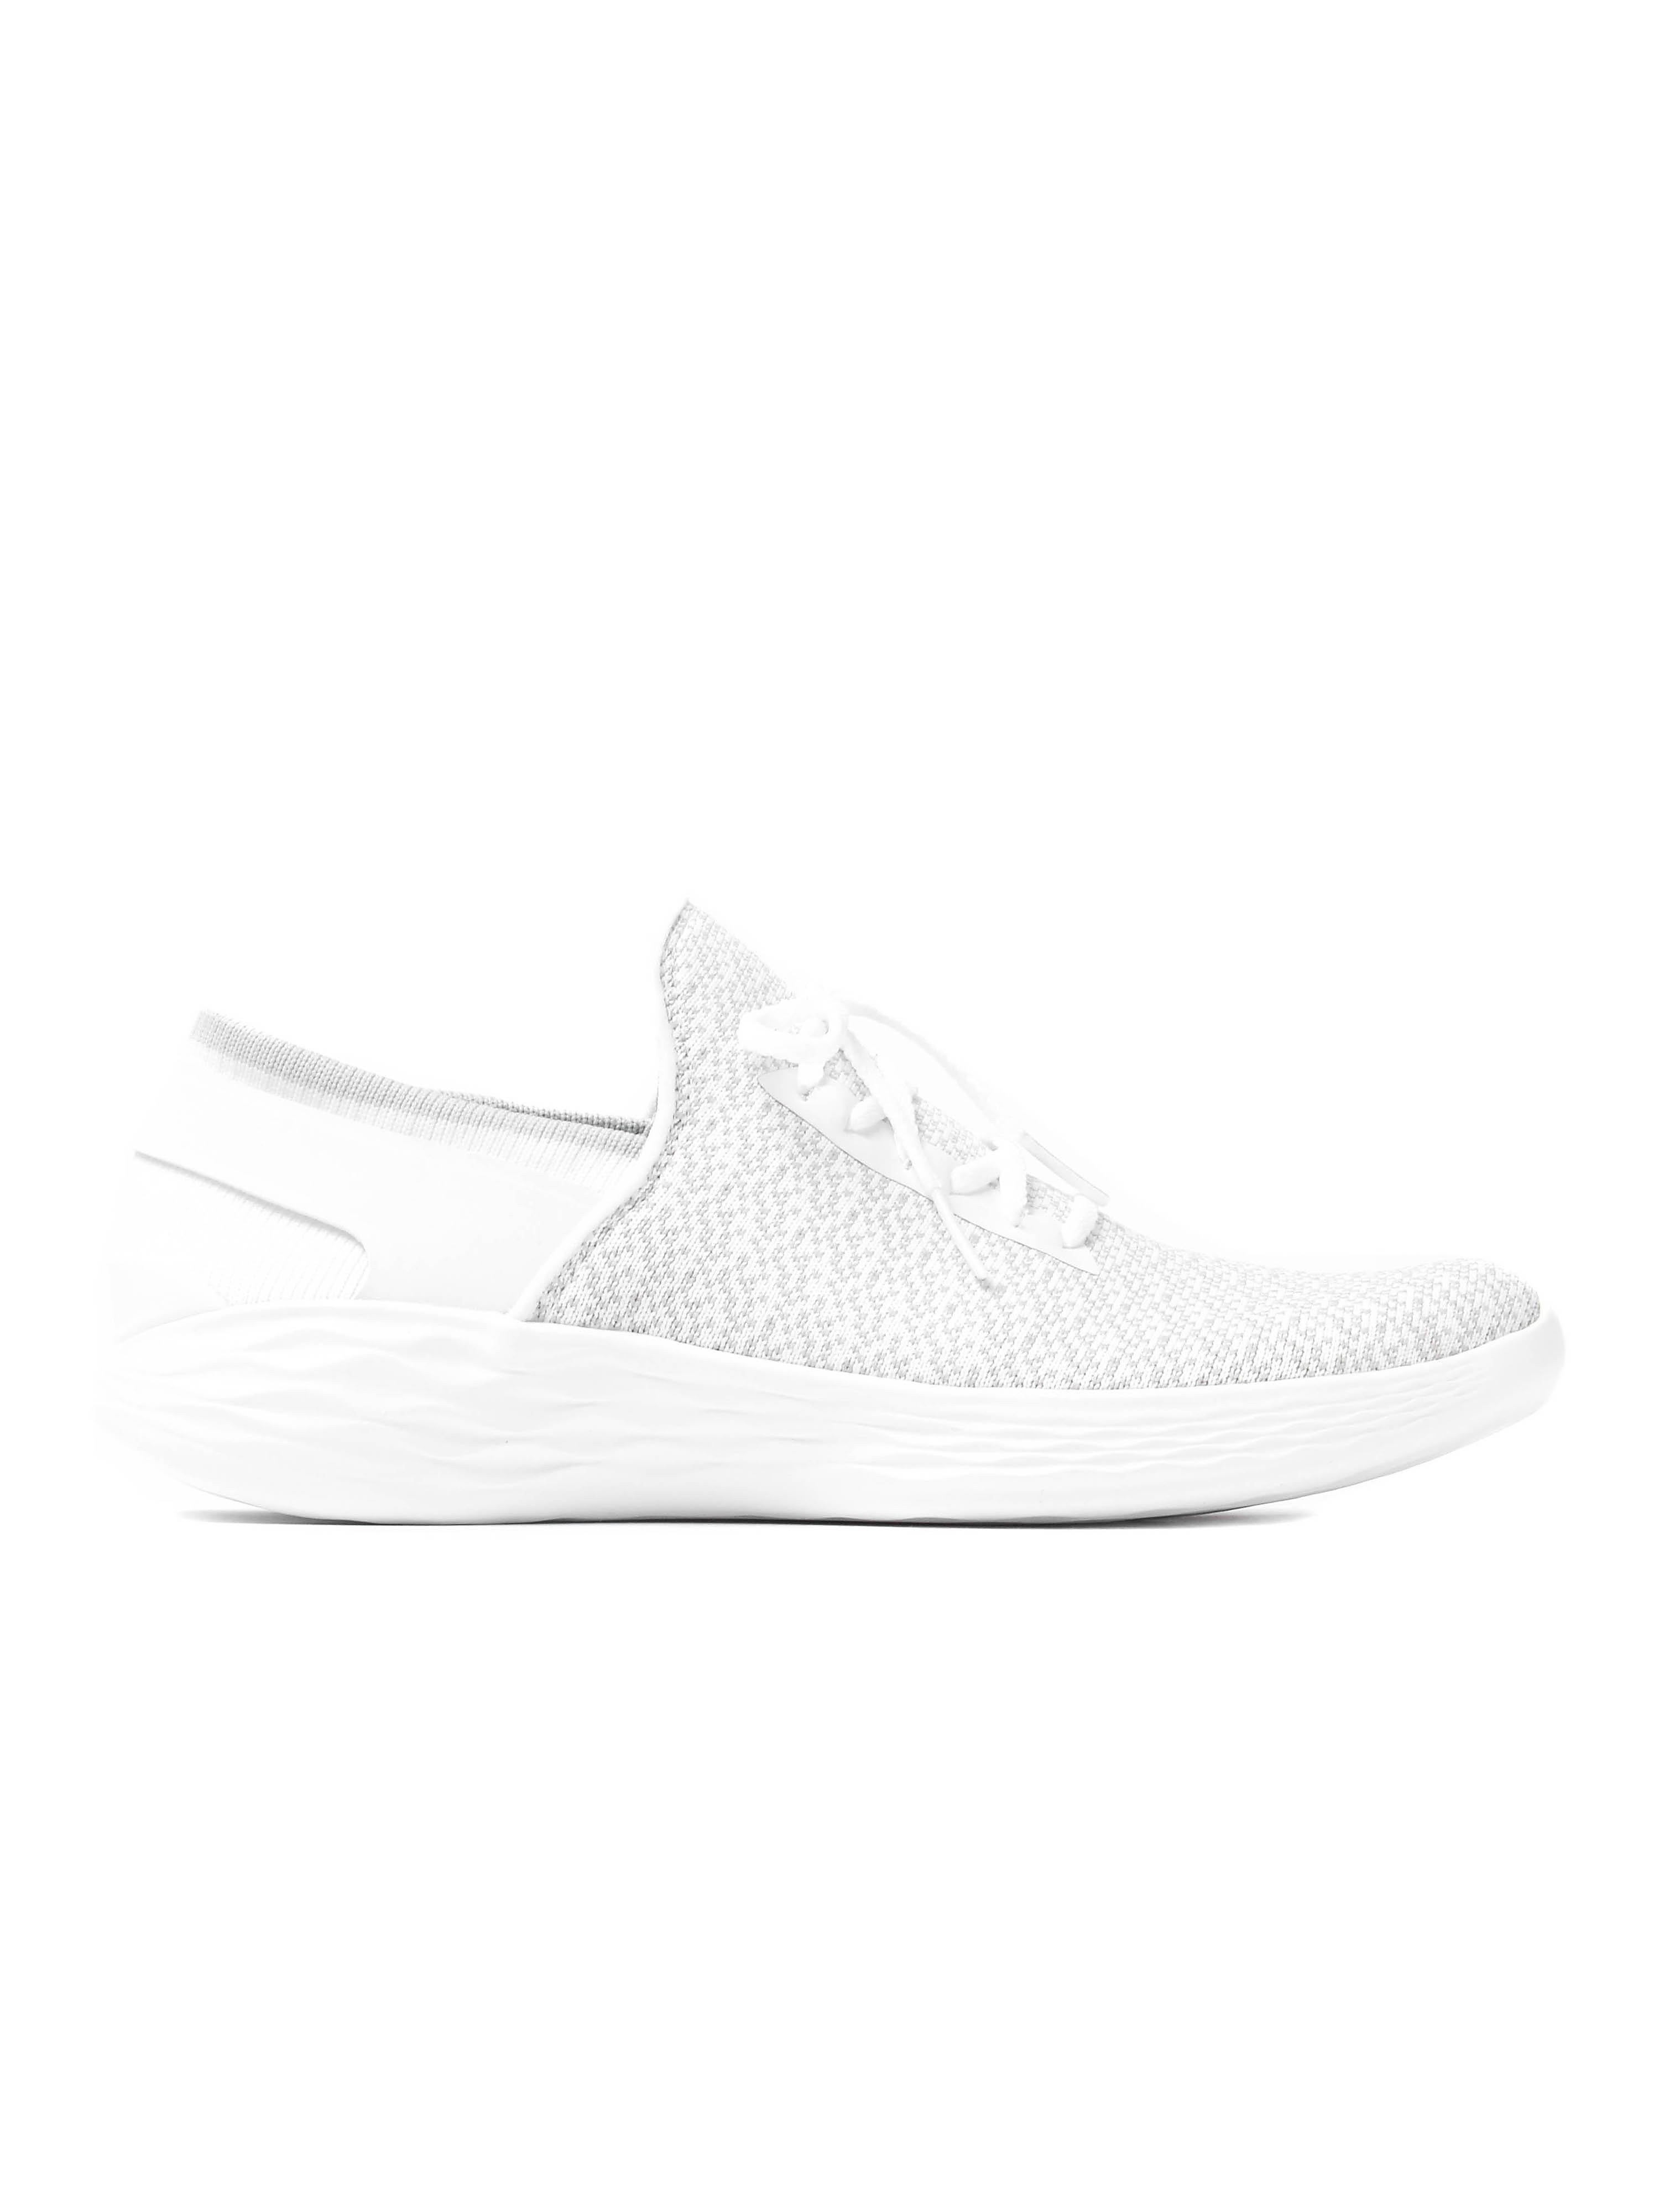 Skechers Women's You Inspire Trainers - White